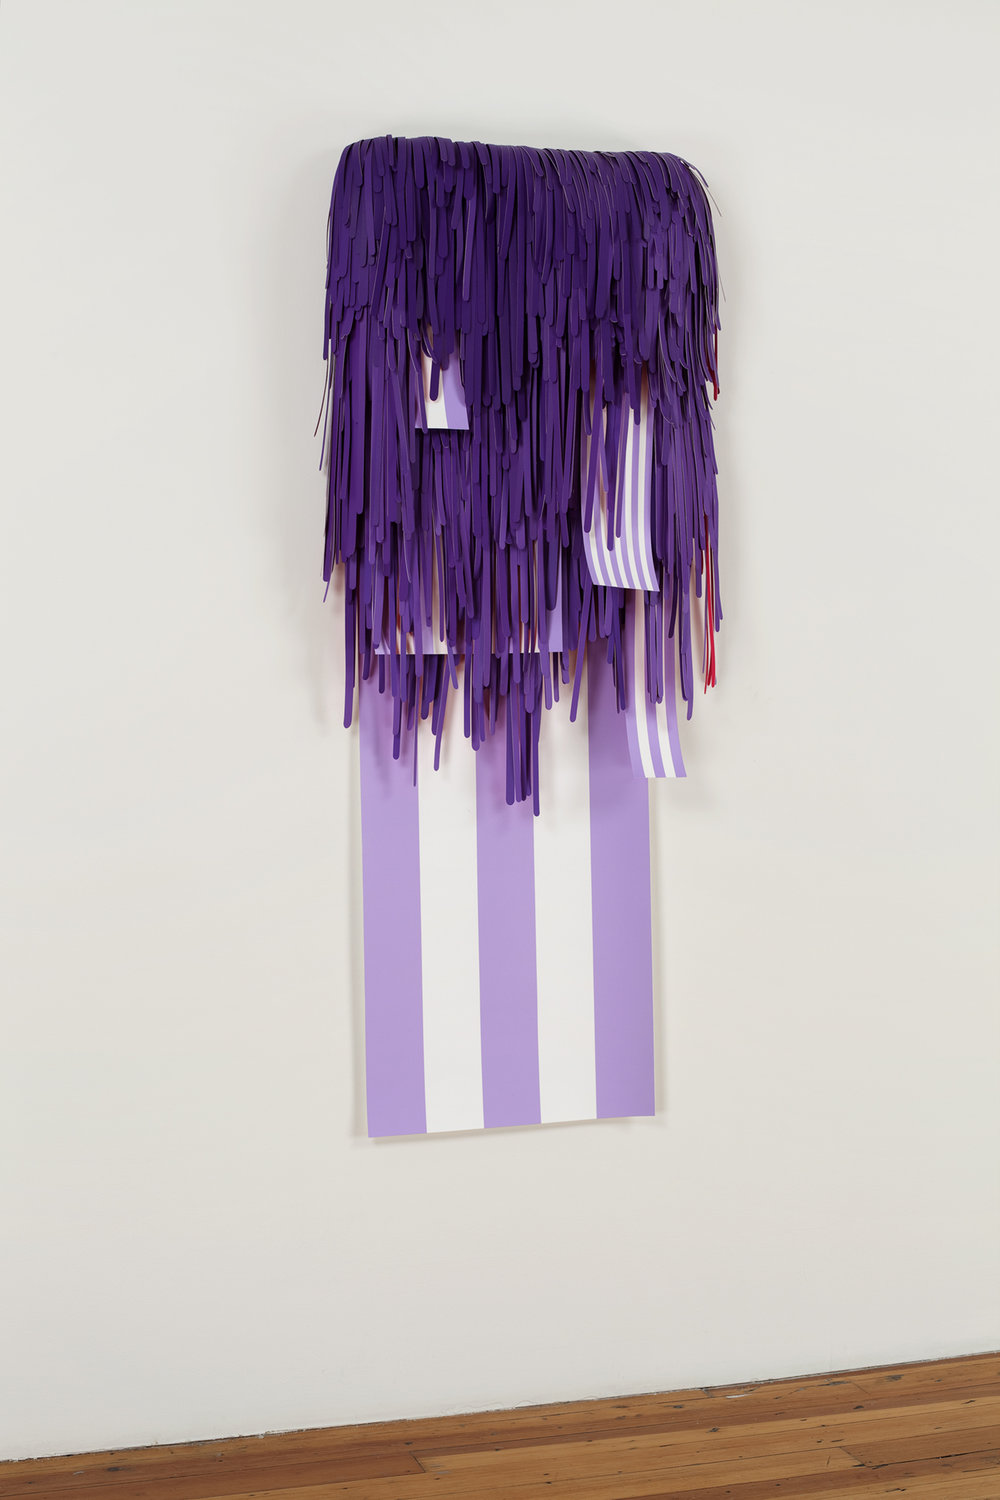 Synchronicity Spoken Here (Purple Monochrome with Junk in the Trunk/ L.H.O.O.Q. with Maxi Stripes),  2009